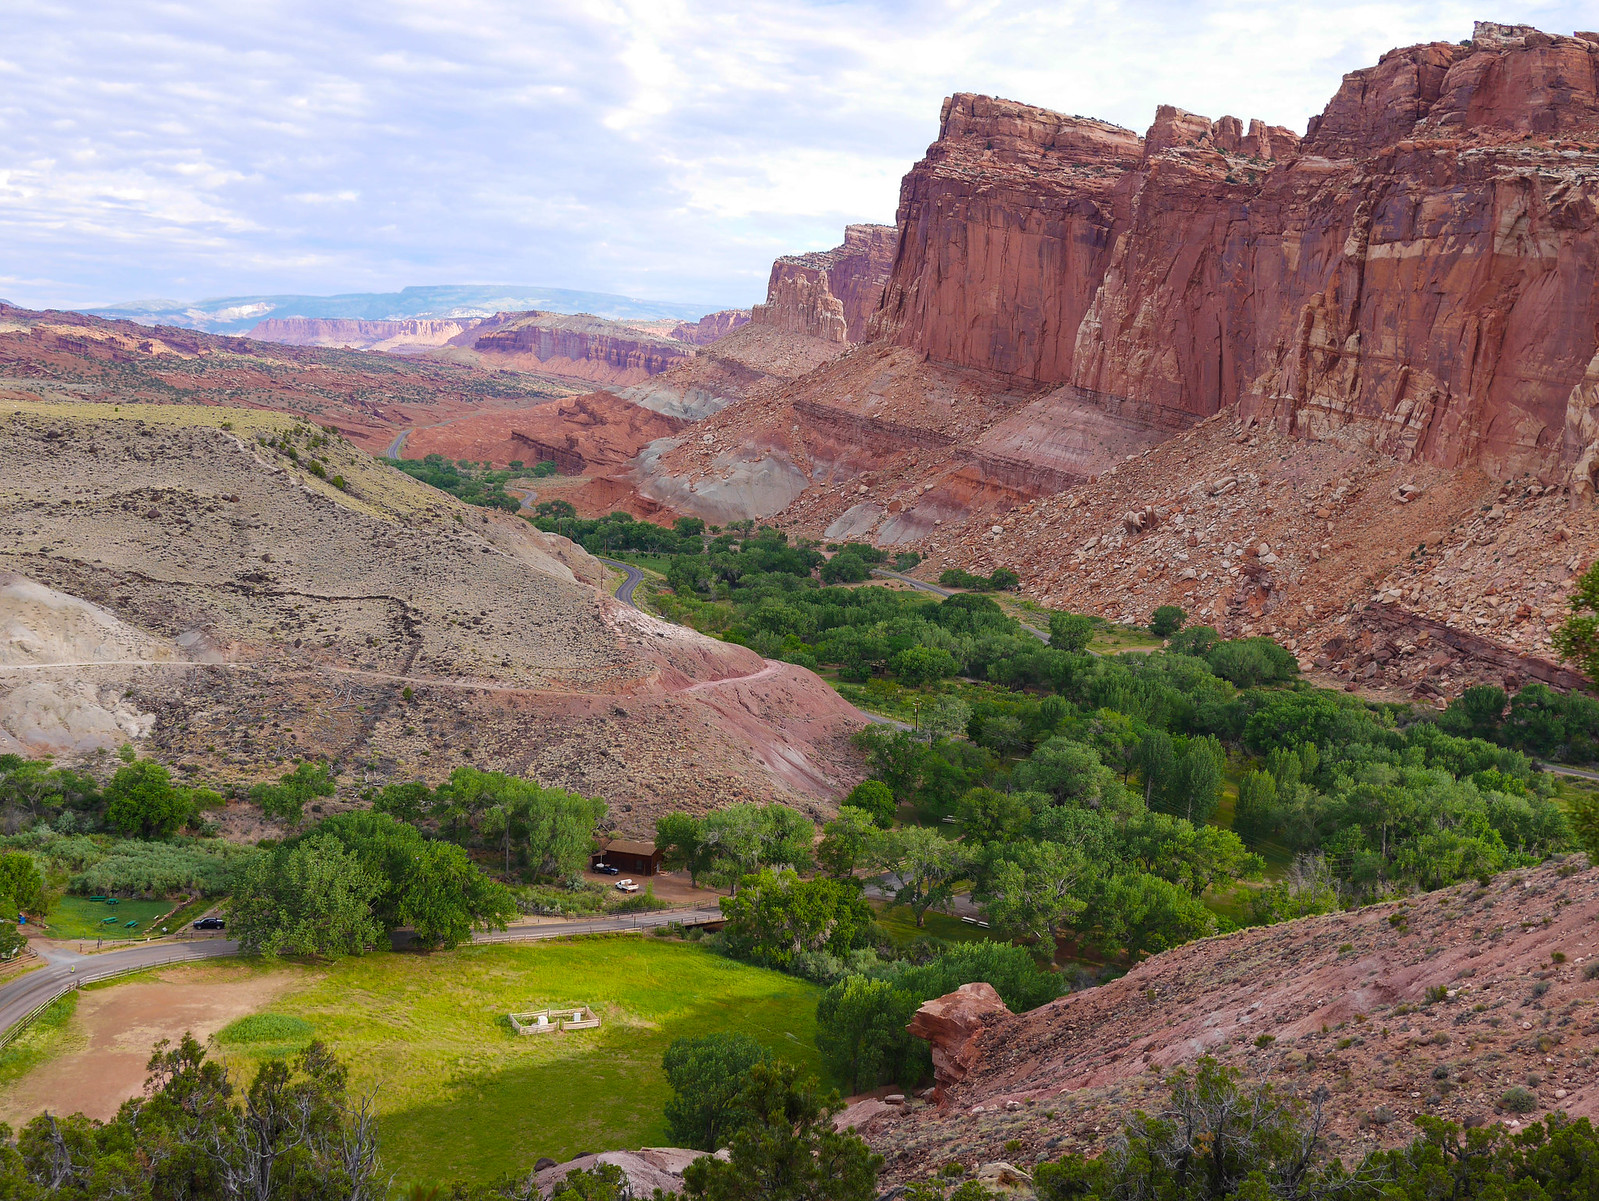 Starting up the Cohab Canyon Trail from Fruita